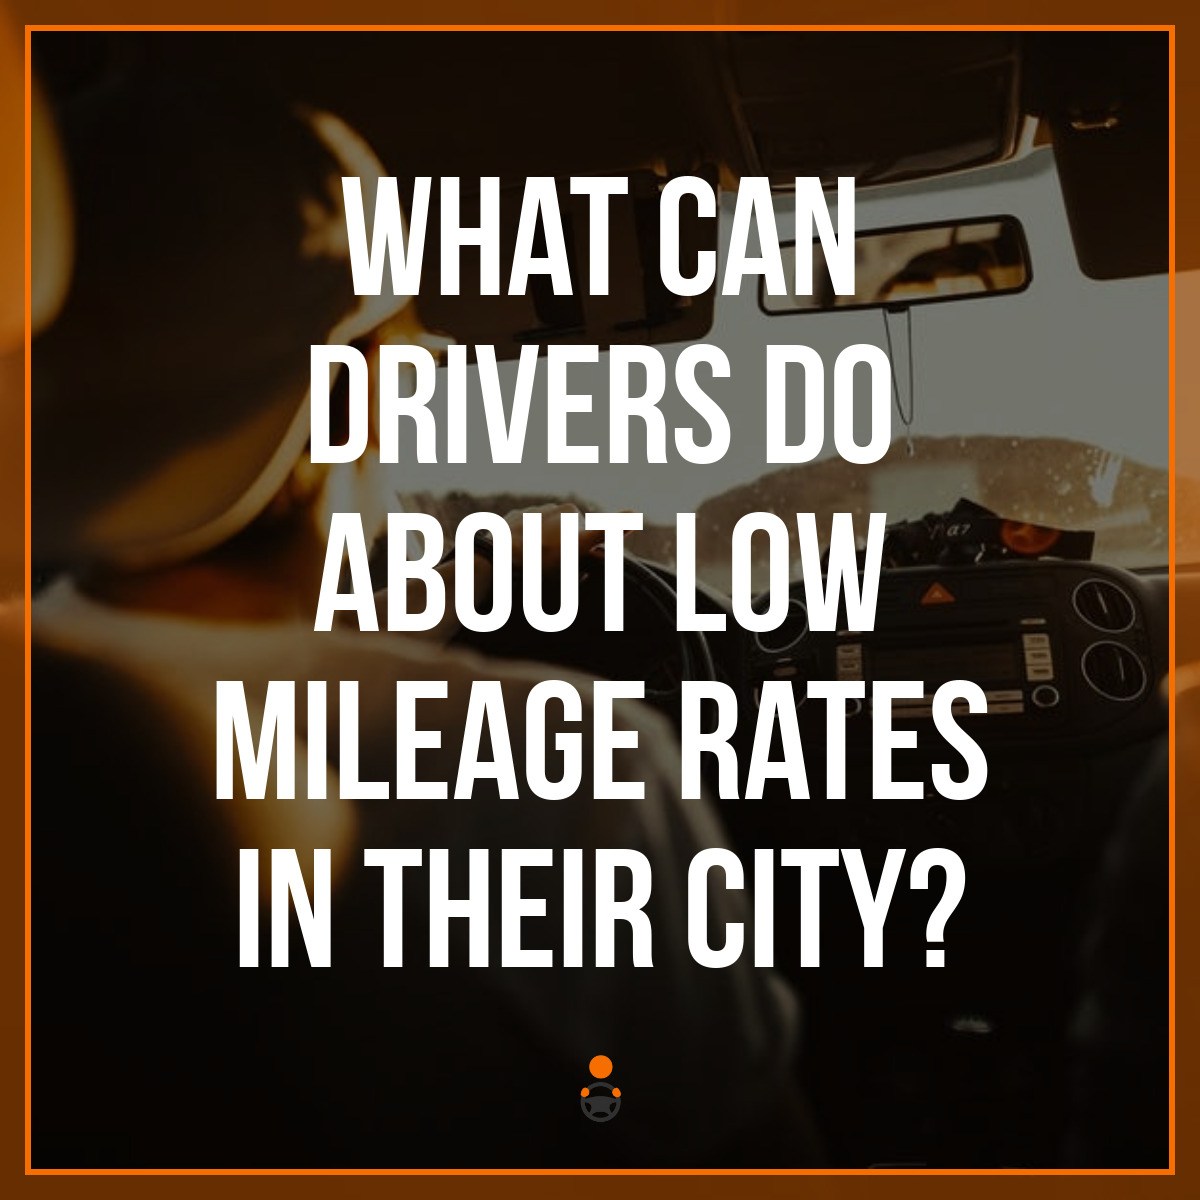 What Can Drivers Do About Low Mileage Rates in Their City?